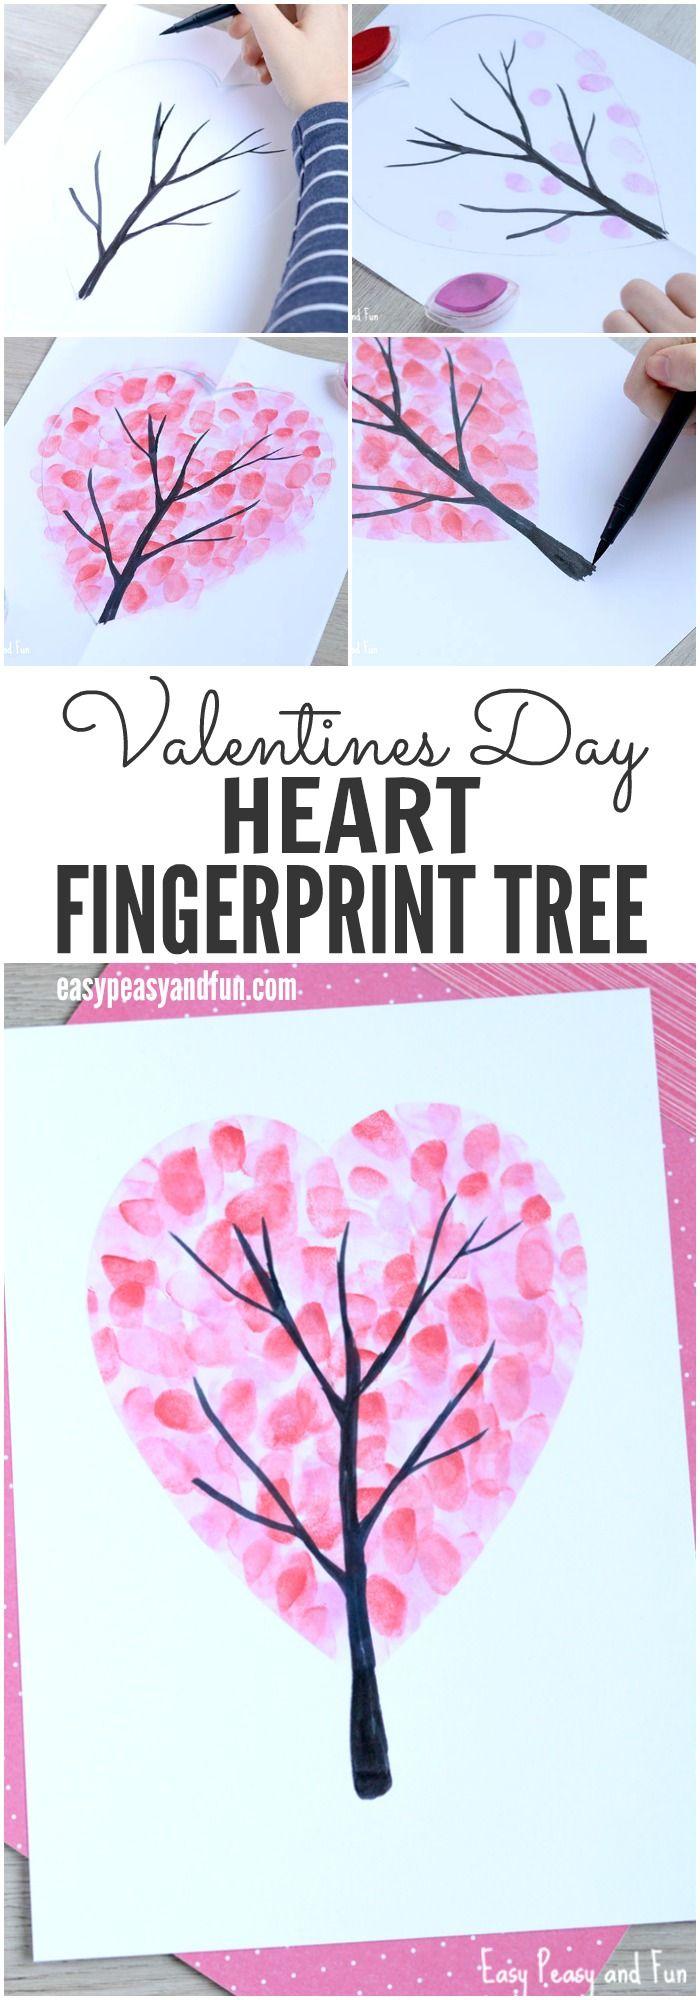 Valentines Day Heart Fingerprint Tree Craft for Kids